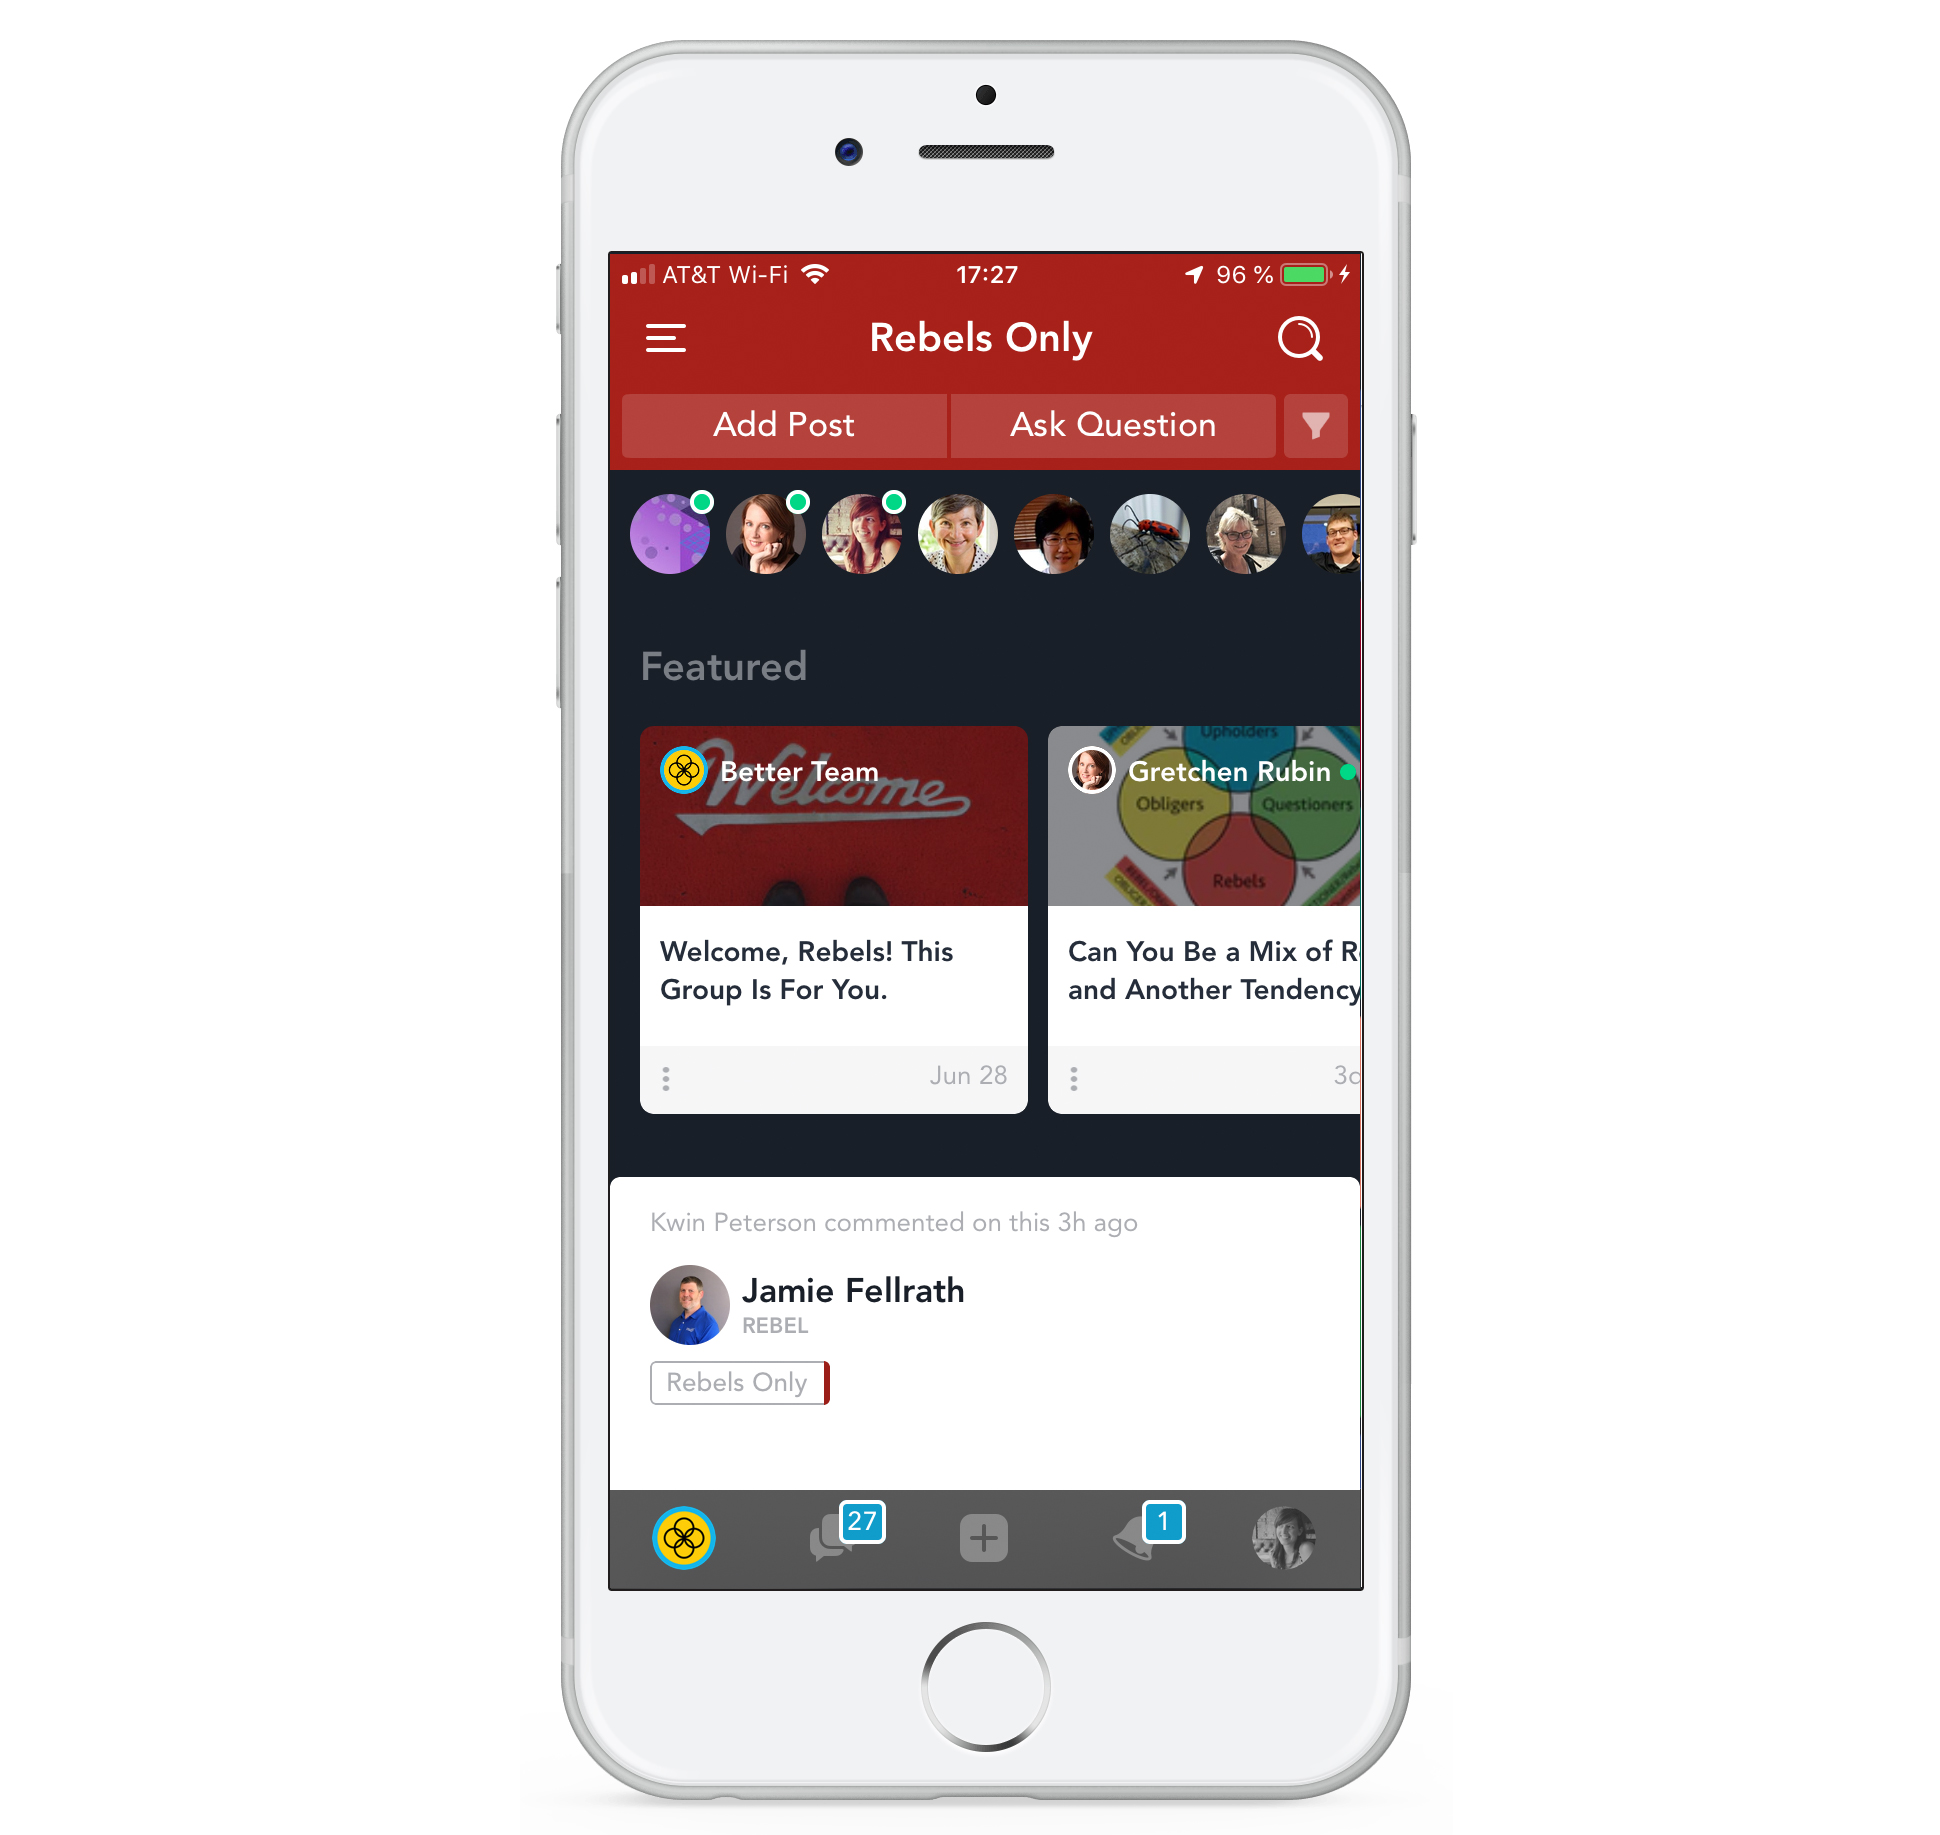 featured.jpg